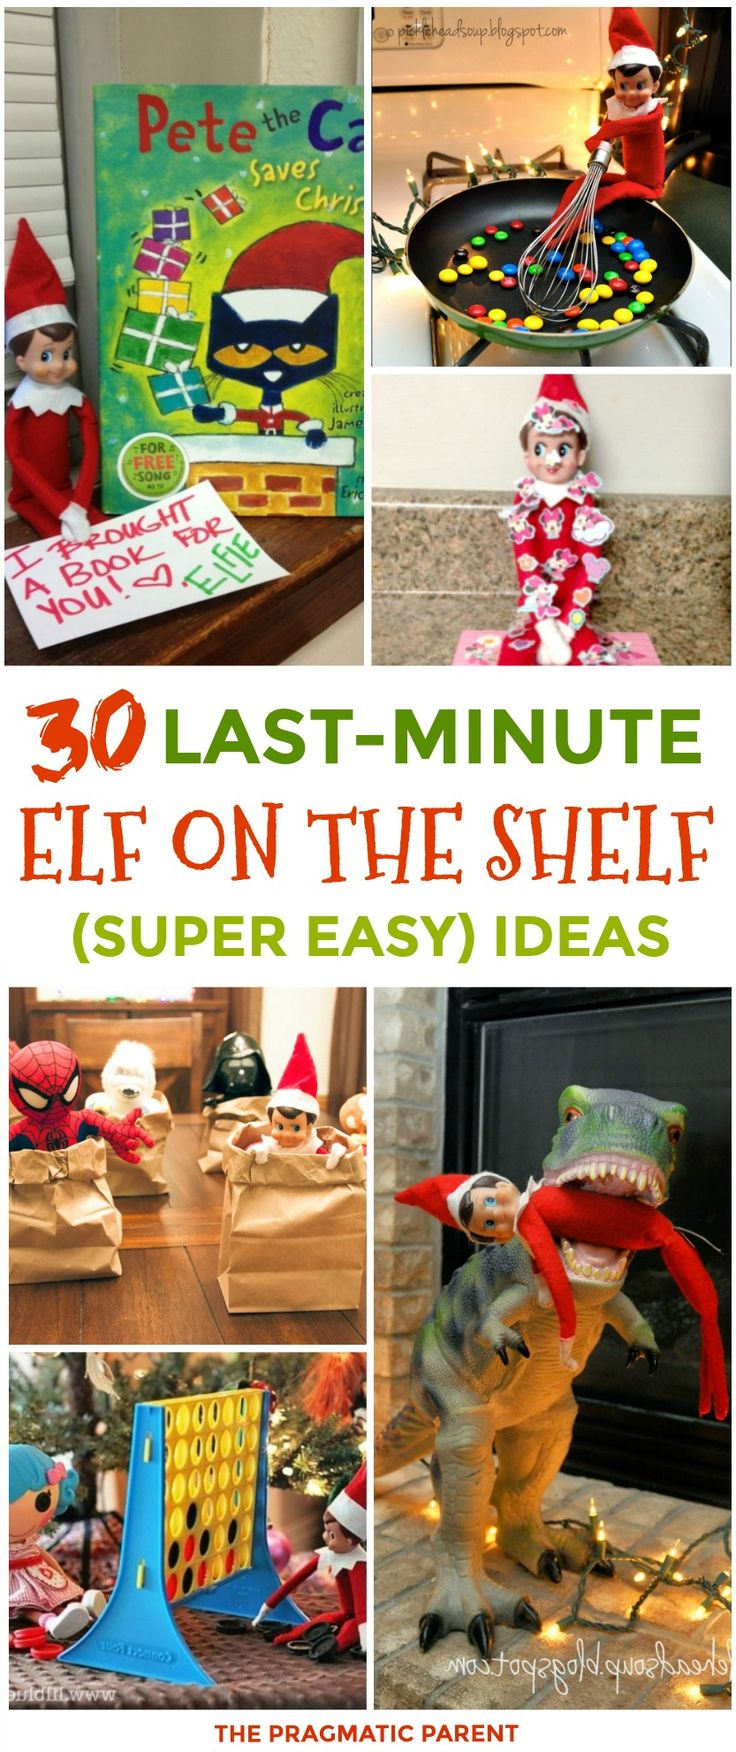 30 Quick & Easy Elf on the Shelf Ideas To Pull Together in 5 Minutes or Less. Easy and fun elf on the shelf ideas you already have the supplies for. Easy elf on the shelf ideas for busy parents. Quick last-minute elf on the shelf ideas. #elfontheshelfideas #elfontheshelf #easyelfontheshelf